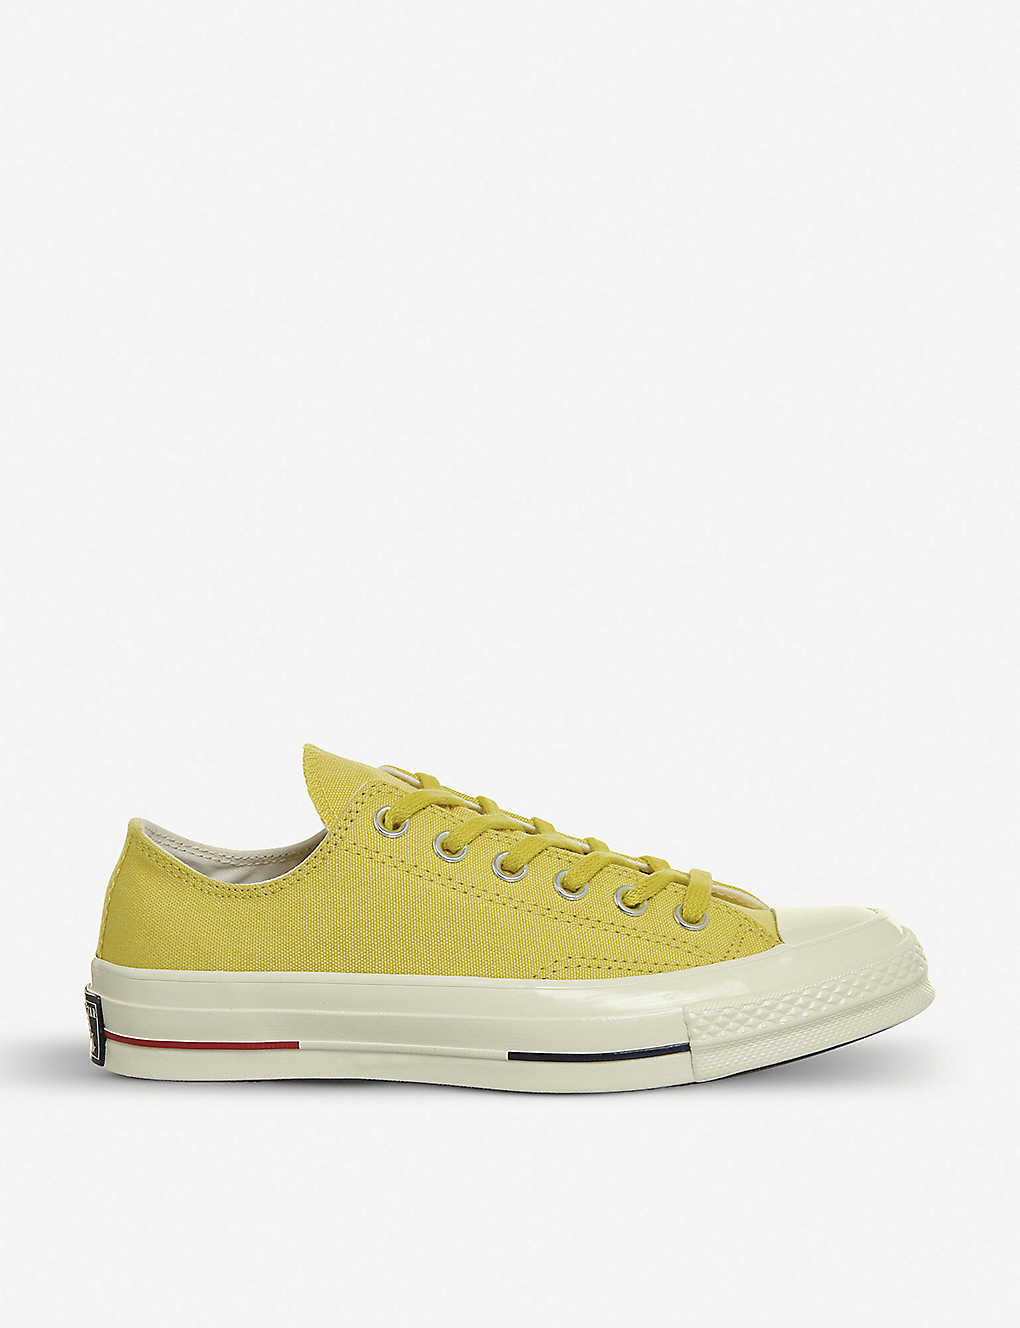 84e37d41f109eb All Star Ox 70 s canvas low-top trainers - Desert gold navy red ...